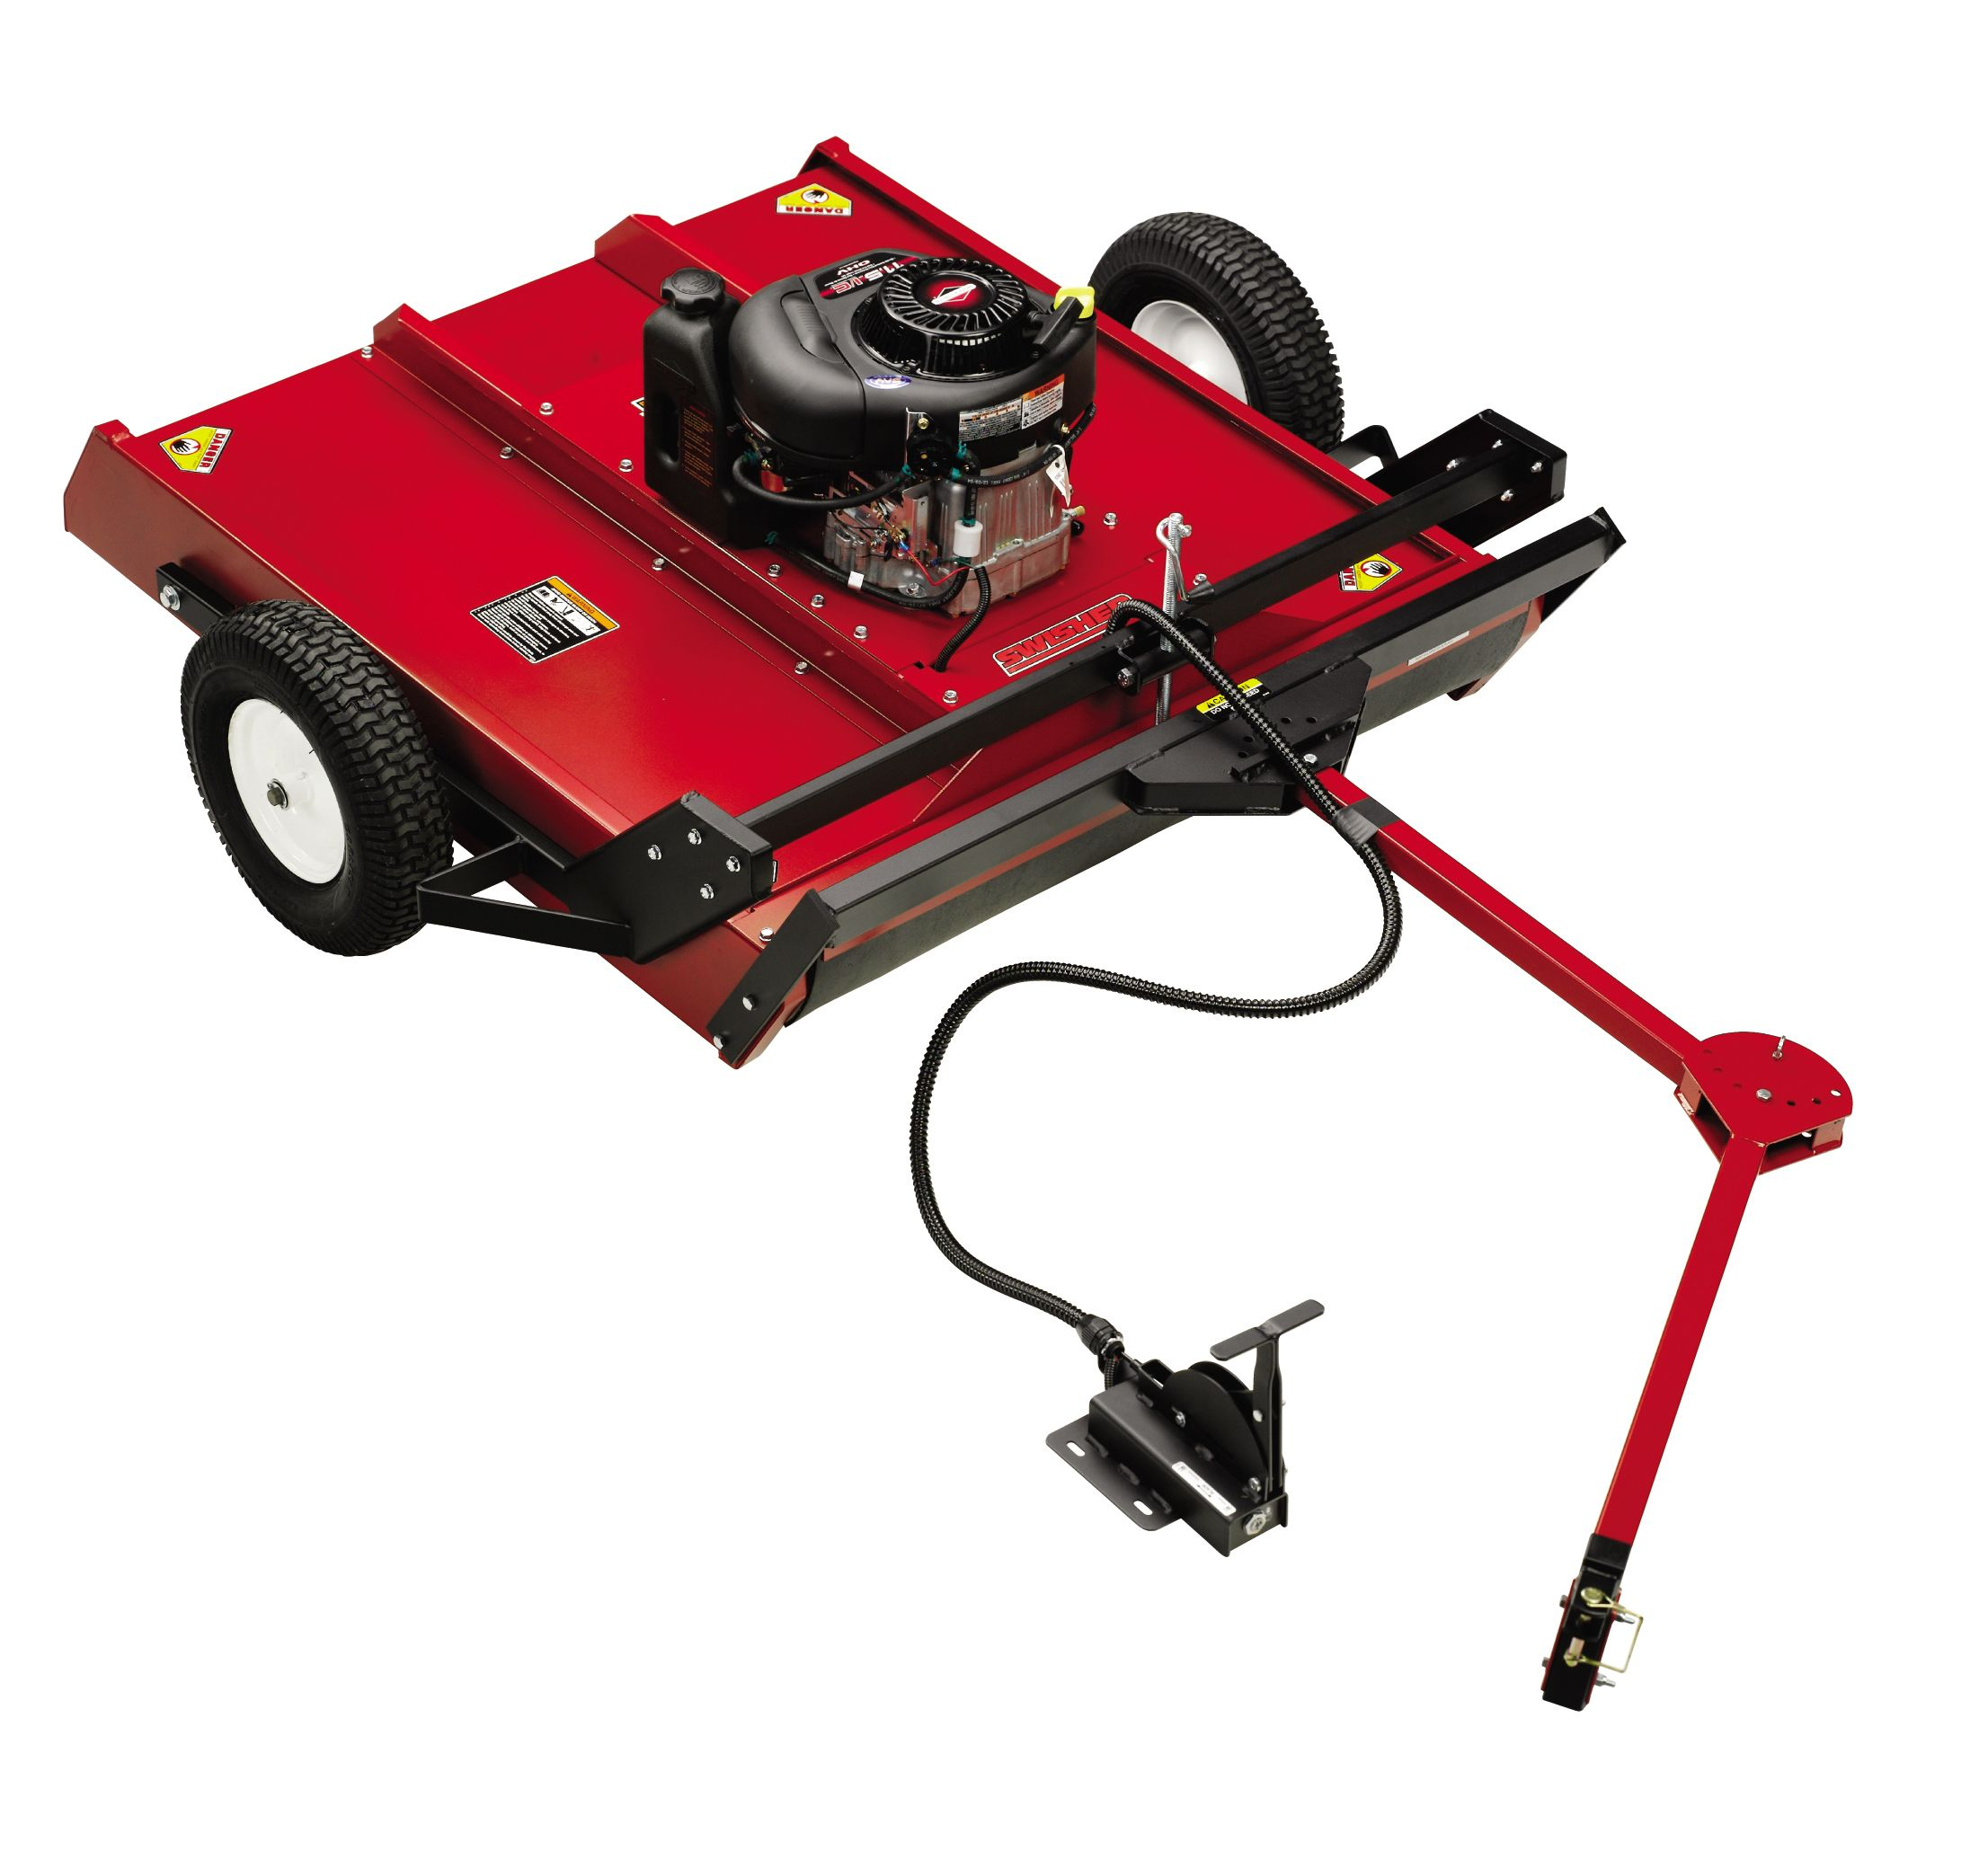 hight resolution of swisher t1260 mower wiring diagram trusted wiring diagram country clipper wiring diagram bush hog pz2561 wiring